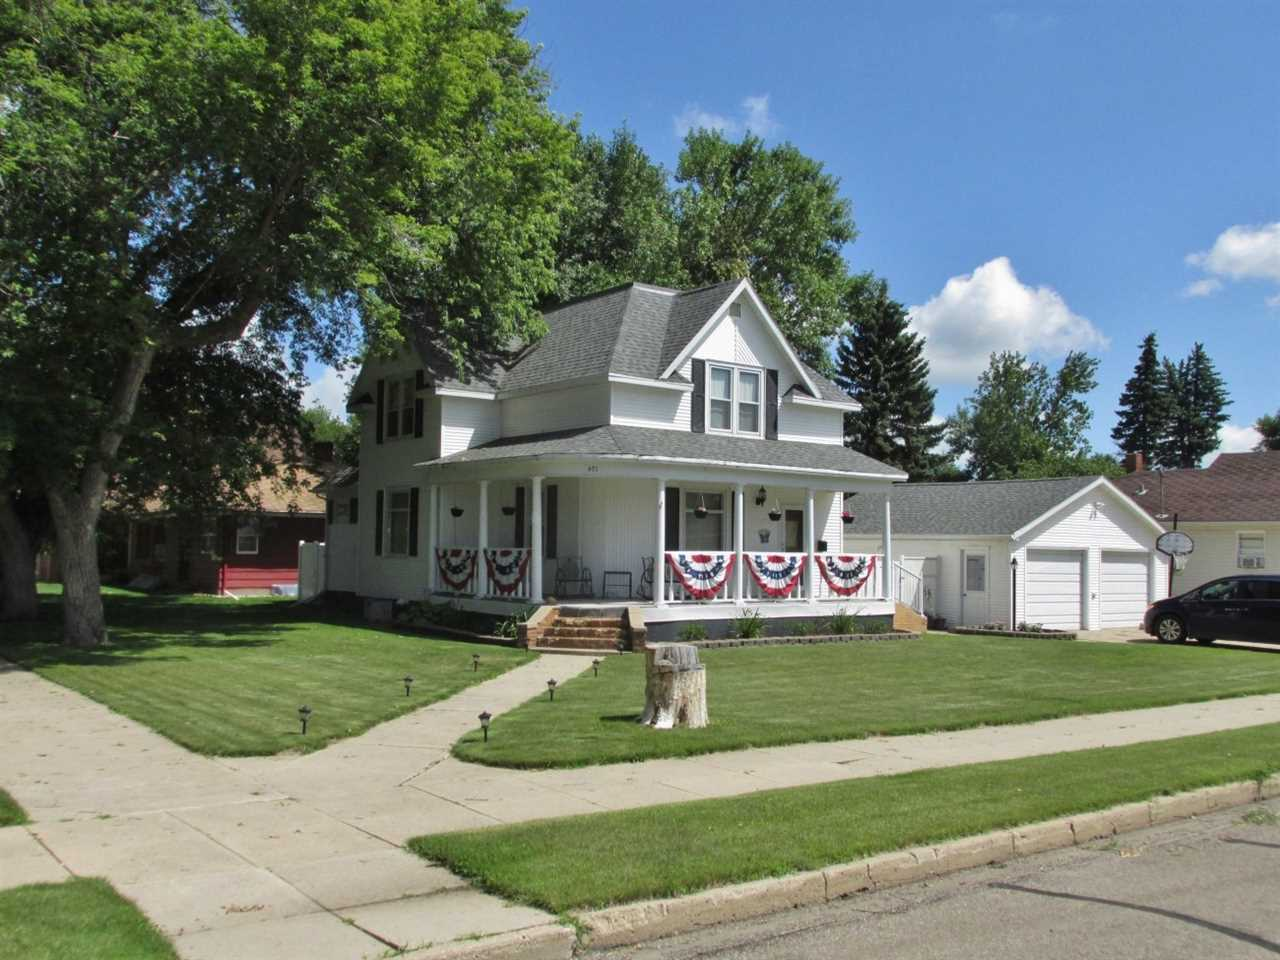 401 3rd St. SE, Rugby, ND 58368